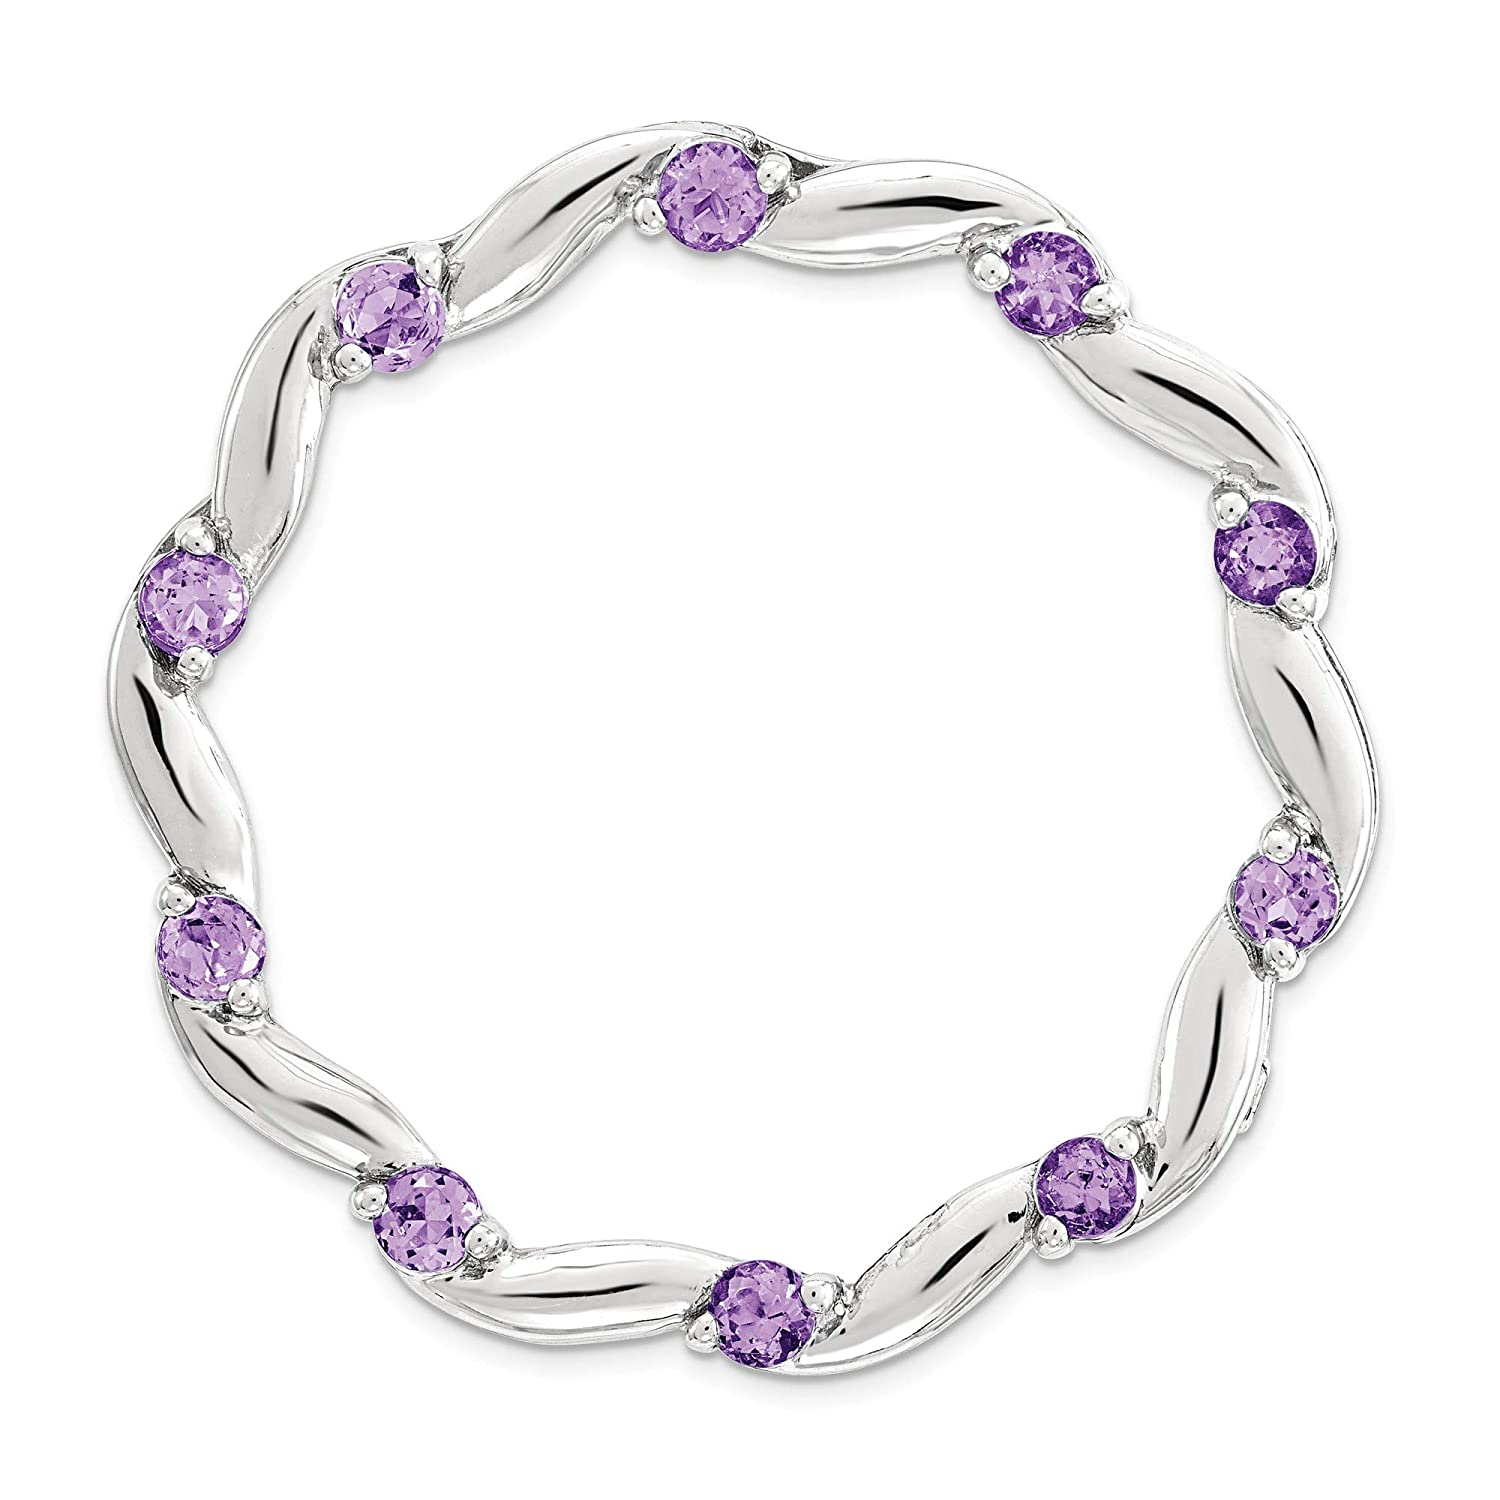 Bonyak Jewelry Sterling Silver Stackable Expressions Large Polished Amethyst Chain Slide